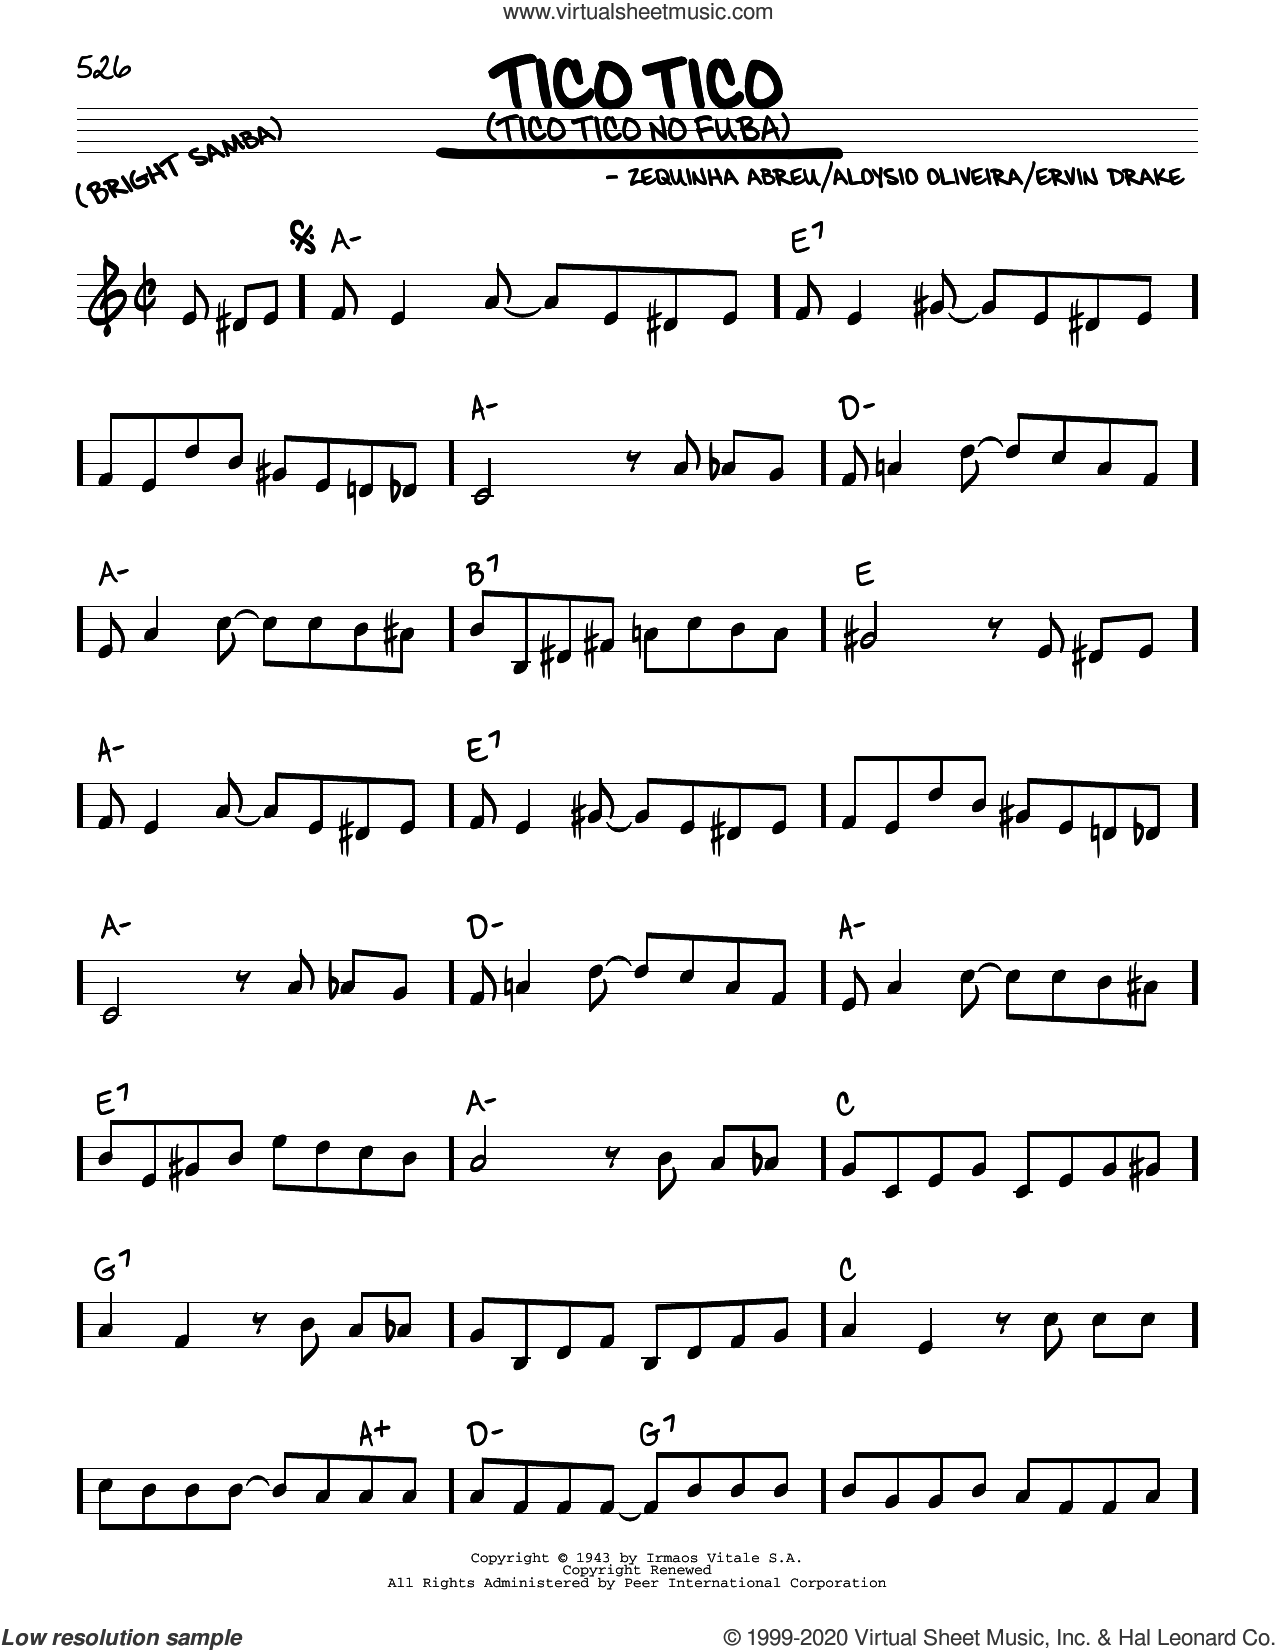 Tico Tico (Tico Tico No Fuba) sheet music for voice and other instruments (real book) by Andrews Sisters, Aloysio Oliveira, Ervin Drake and Zequinha de Abreu, intermediate skill level